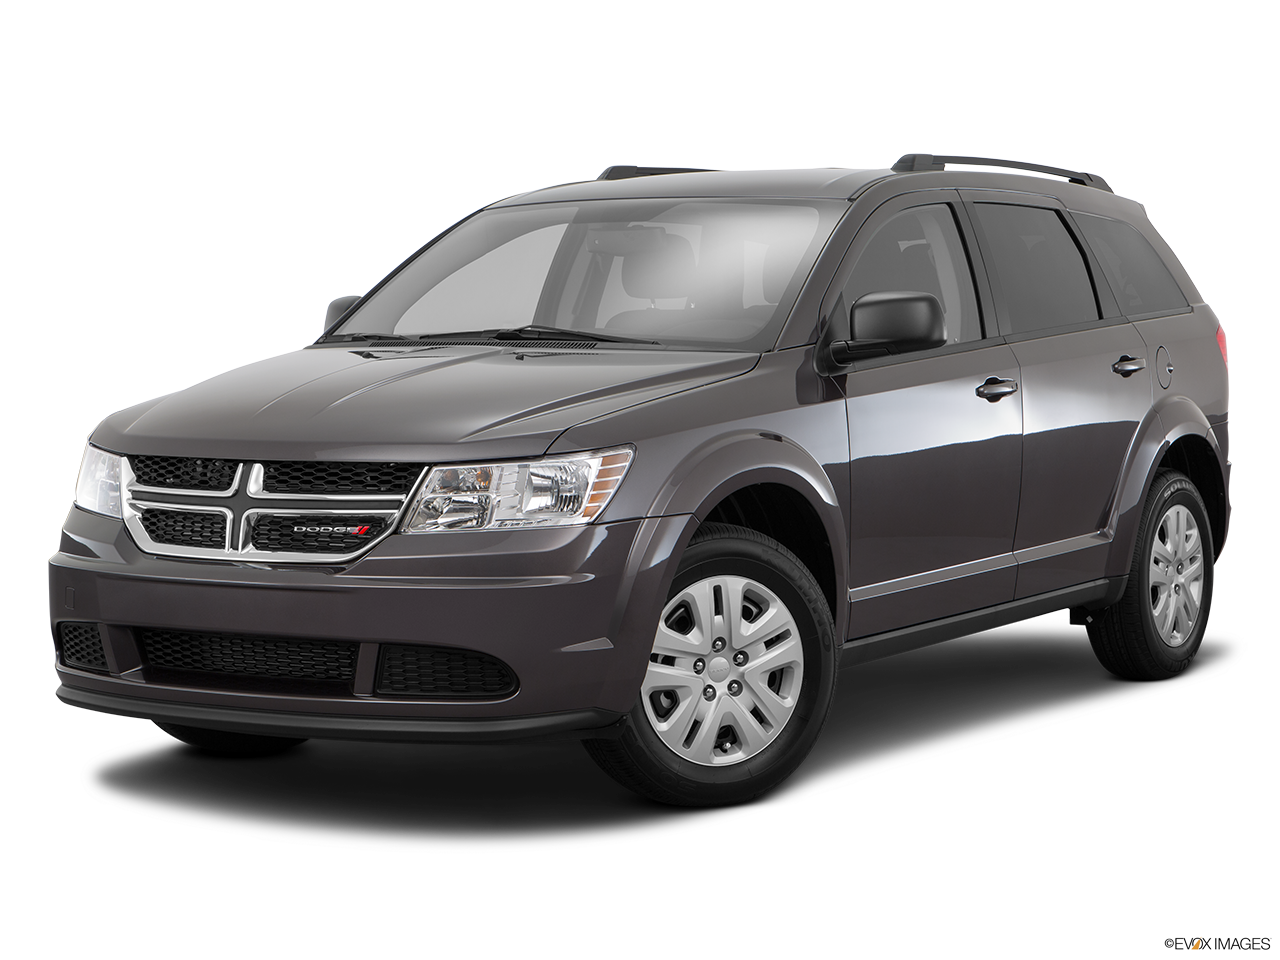 Test Drive A 2016 Dodge Journey  at Arrigo CDJR West Palm Beach in West Palm Beach